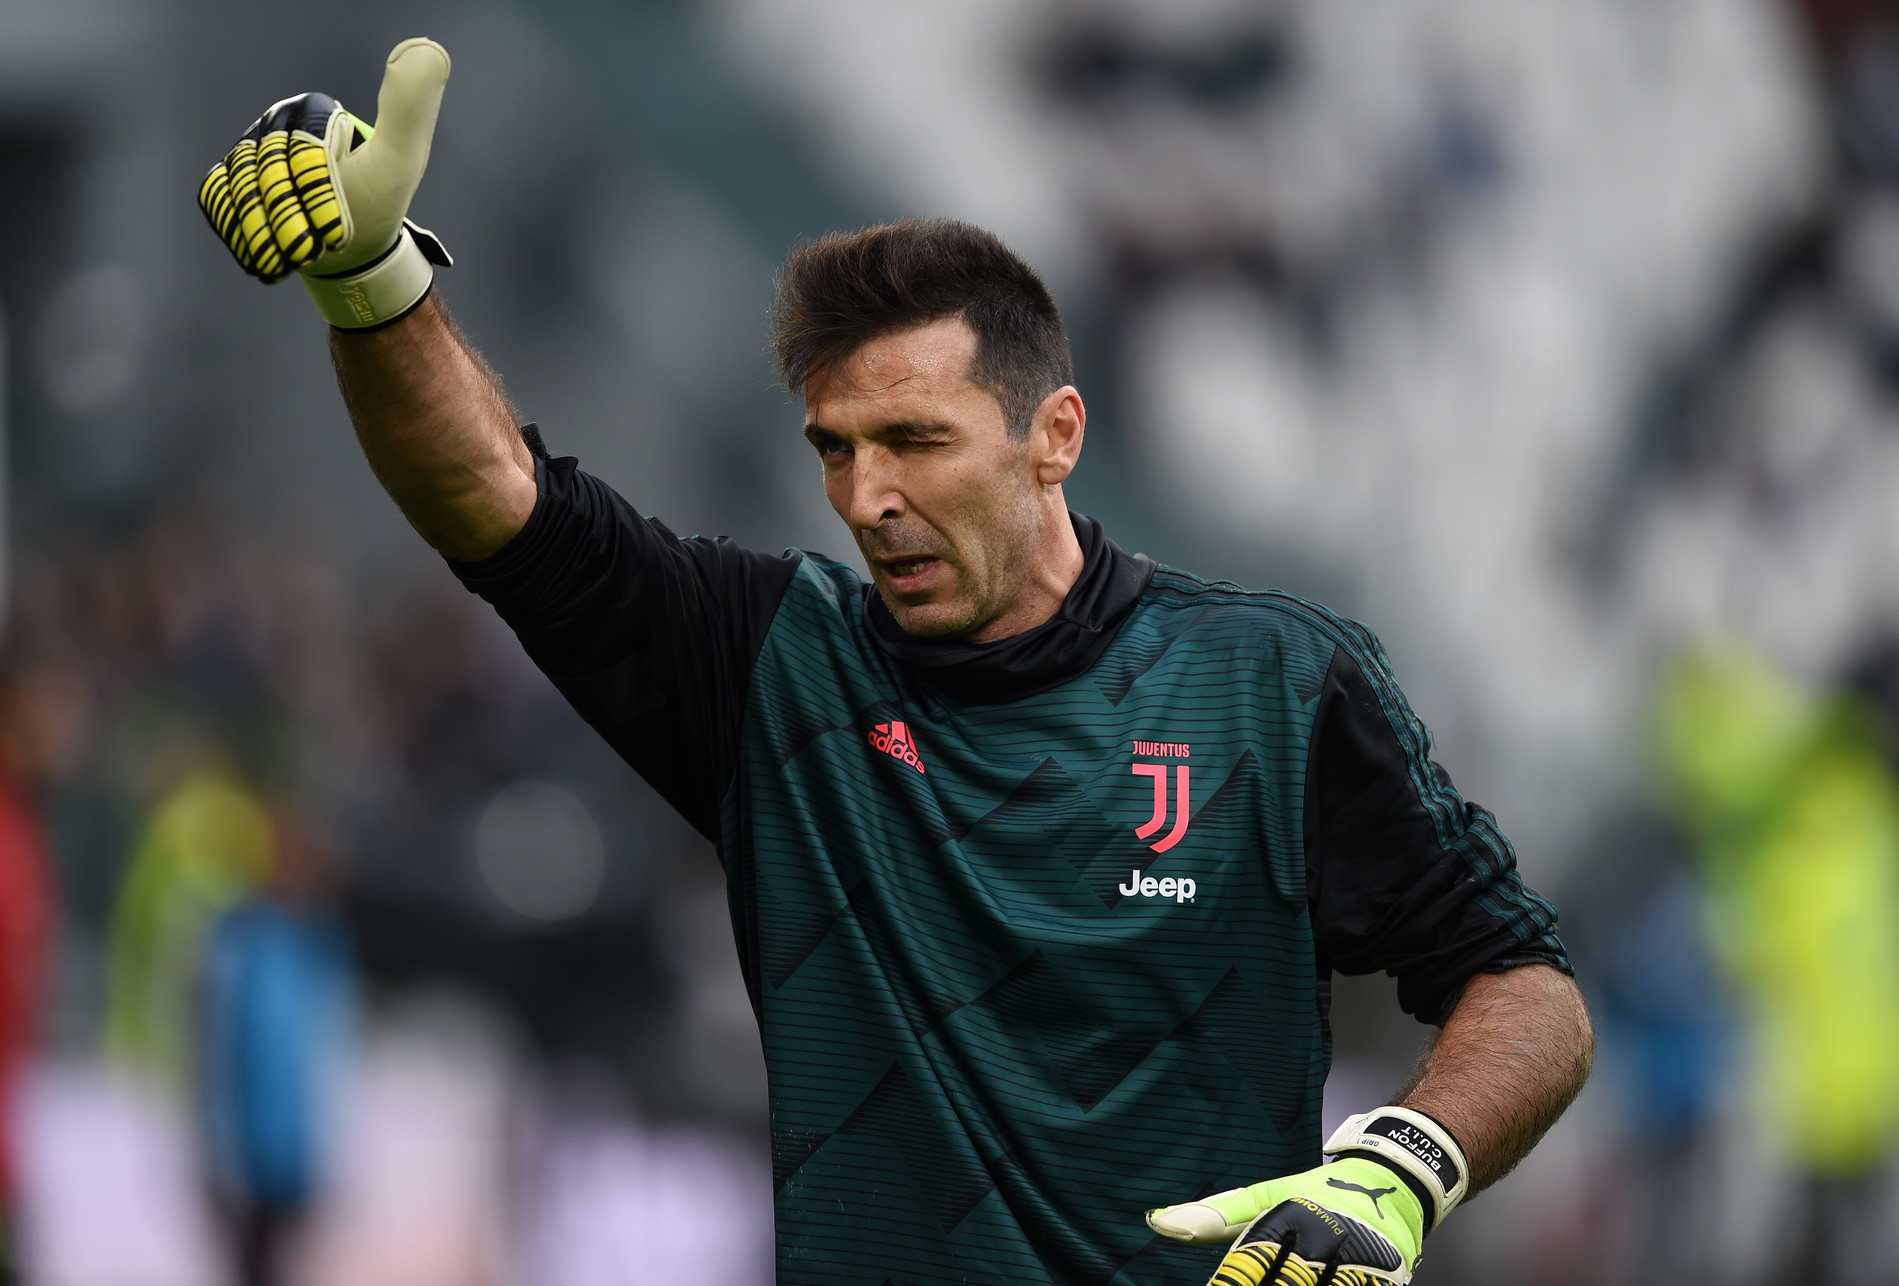 2) Gianluigi Buffon: 8,7 milioni di follower